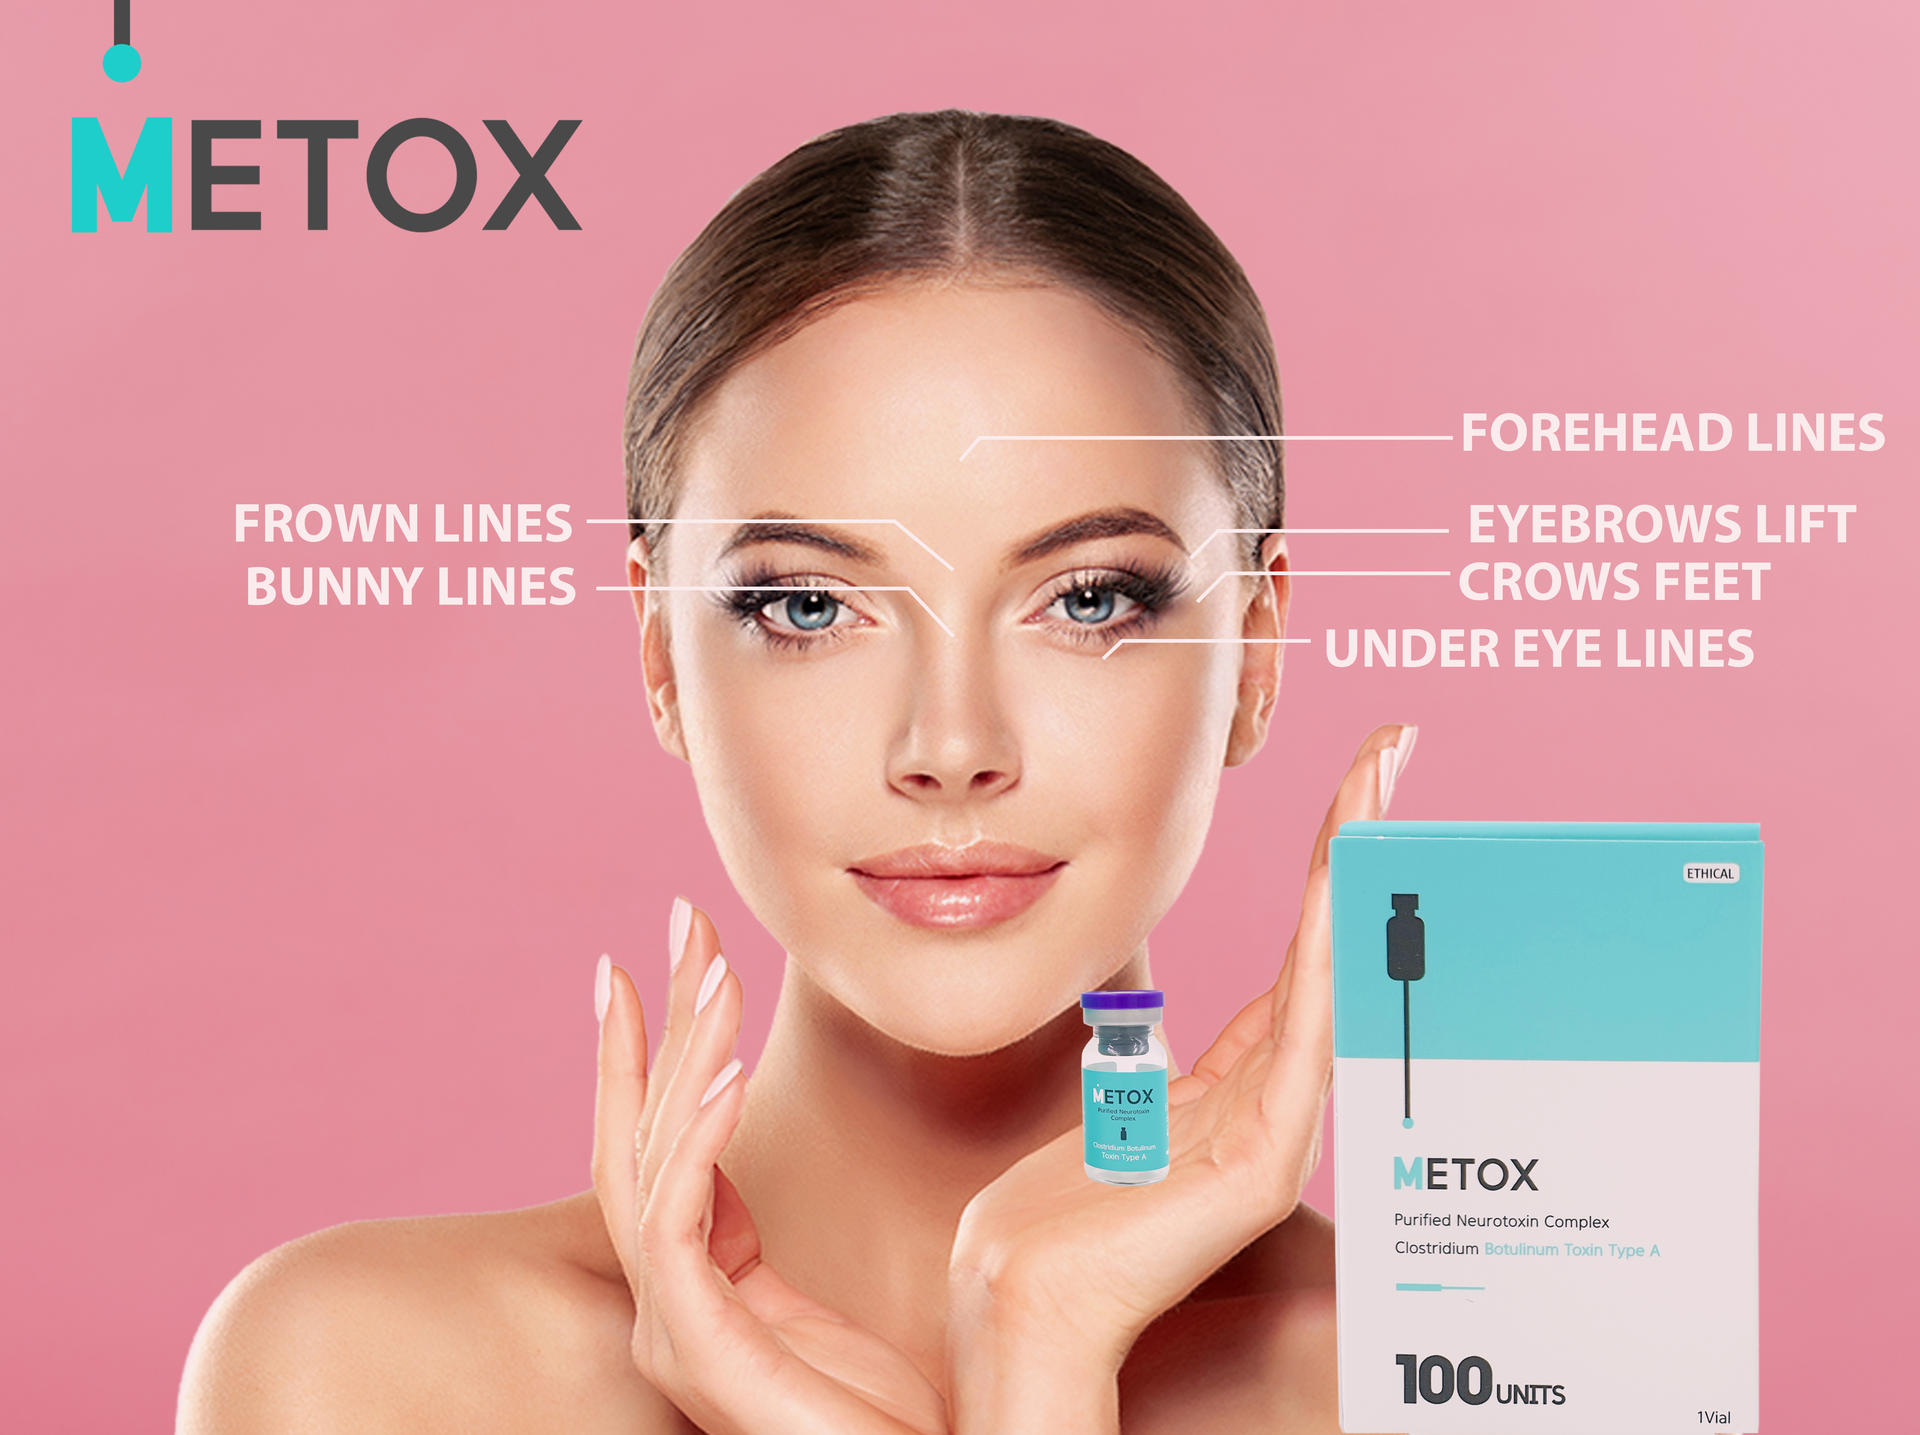 Metox Purified Toxin Type A Maypharm toxin 100 units injections wrinkle #maypharmtox  #botoxface Me too Filler botox fillers botox face botox lips forehead fillers botox forehead